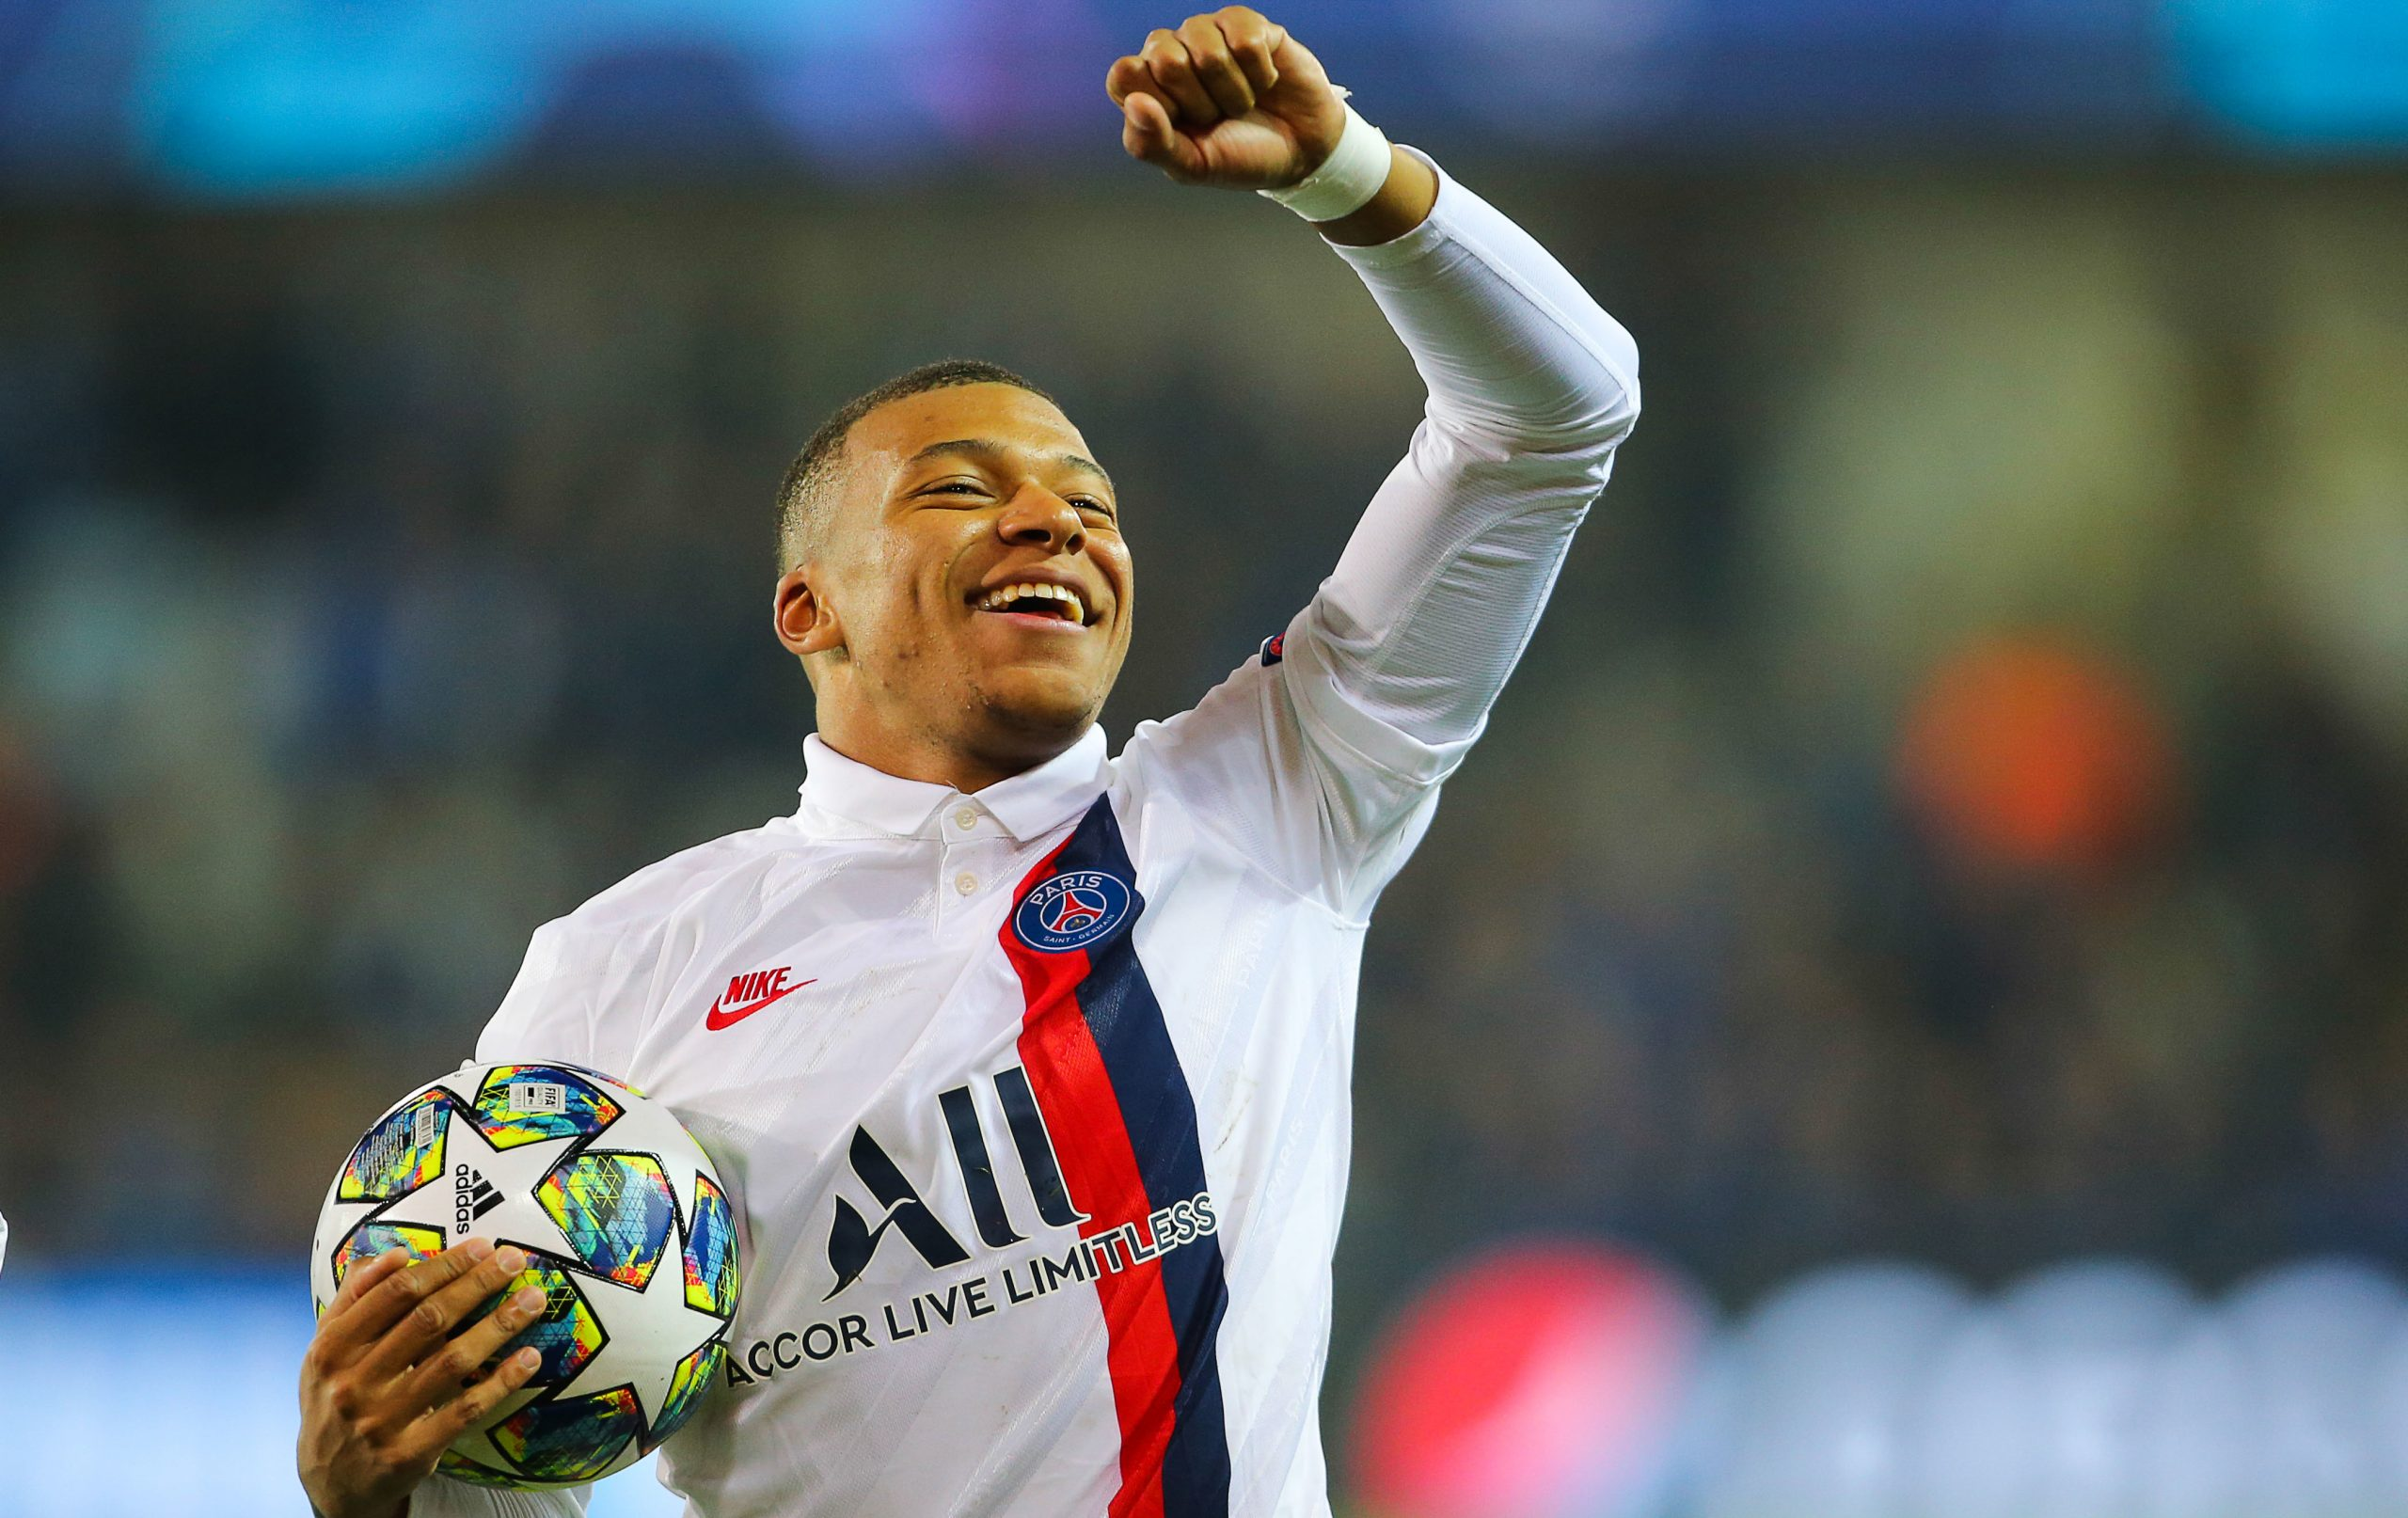 Paris Saint-Germain's Kylian Mbappé celebrates after scoring a second half hattrick against Club Brugge in the UEFA Champions League